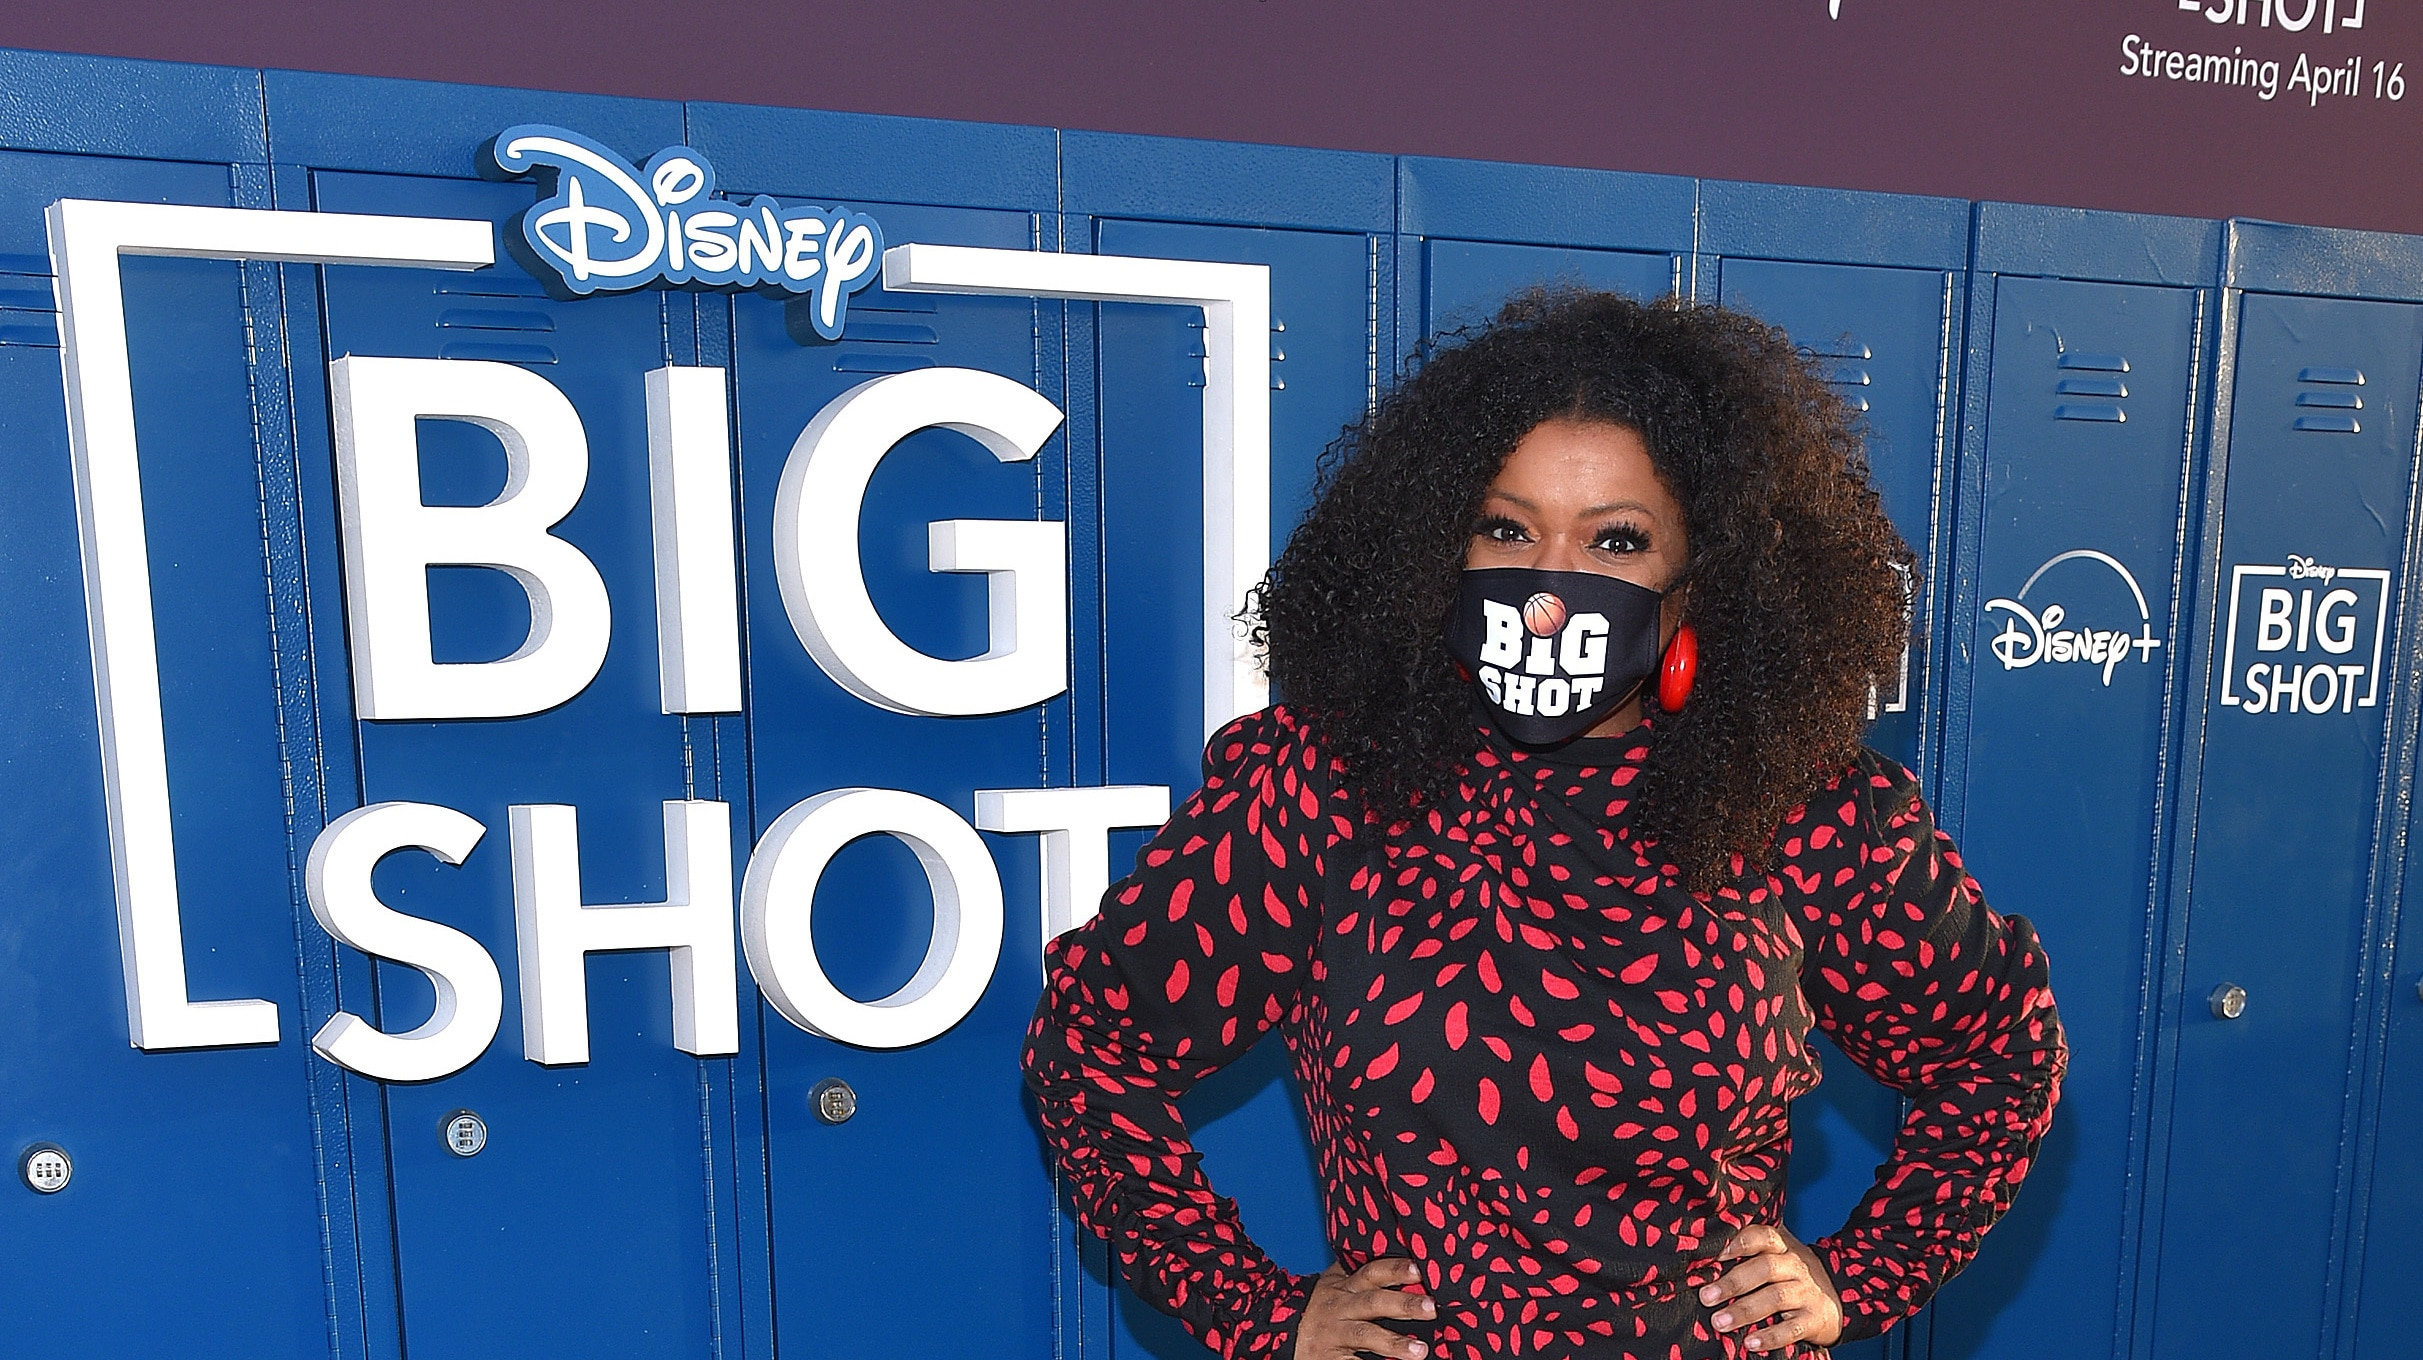 LOS ANGELES, CA - APRIL 14: Yvette Nicole Brown attends the world premiere drive-in screening of the Disney + original series ìBIG SHOTî at The Grove in Los Angeles, California on April 14, 2021. (Photo by Stewart Cook/Disney +/PictureGroup)